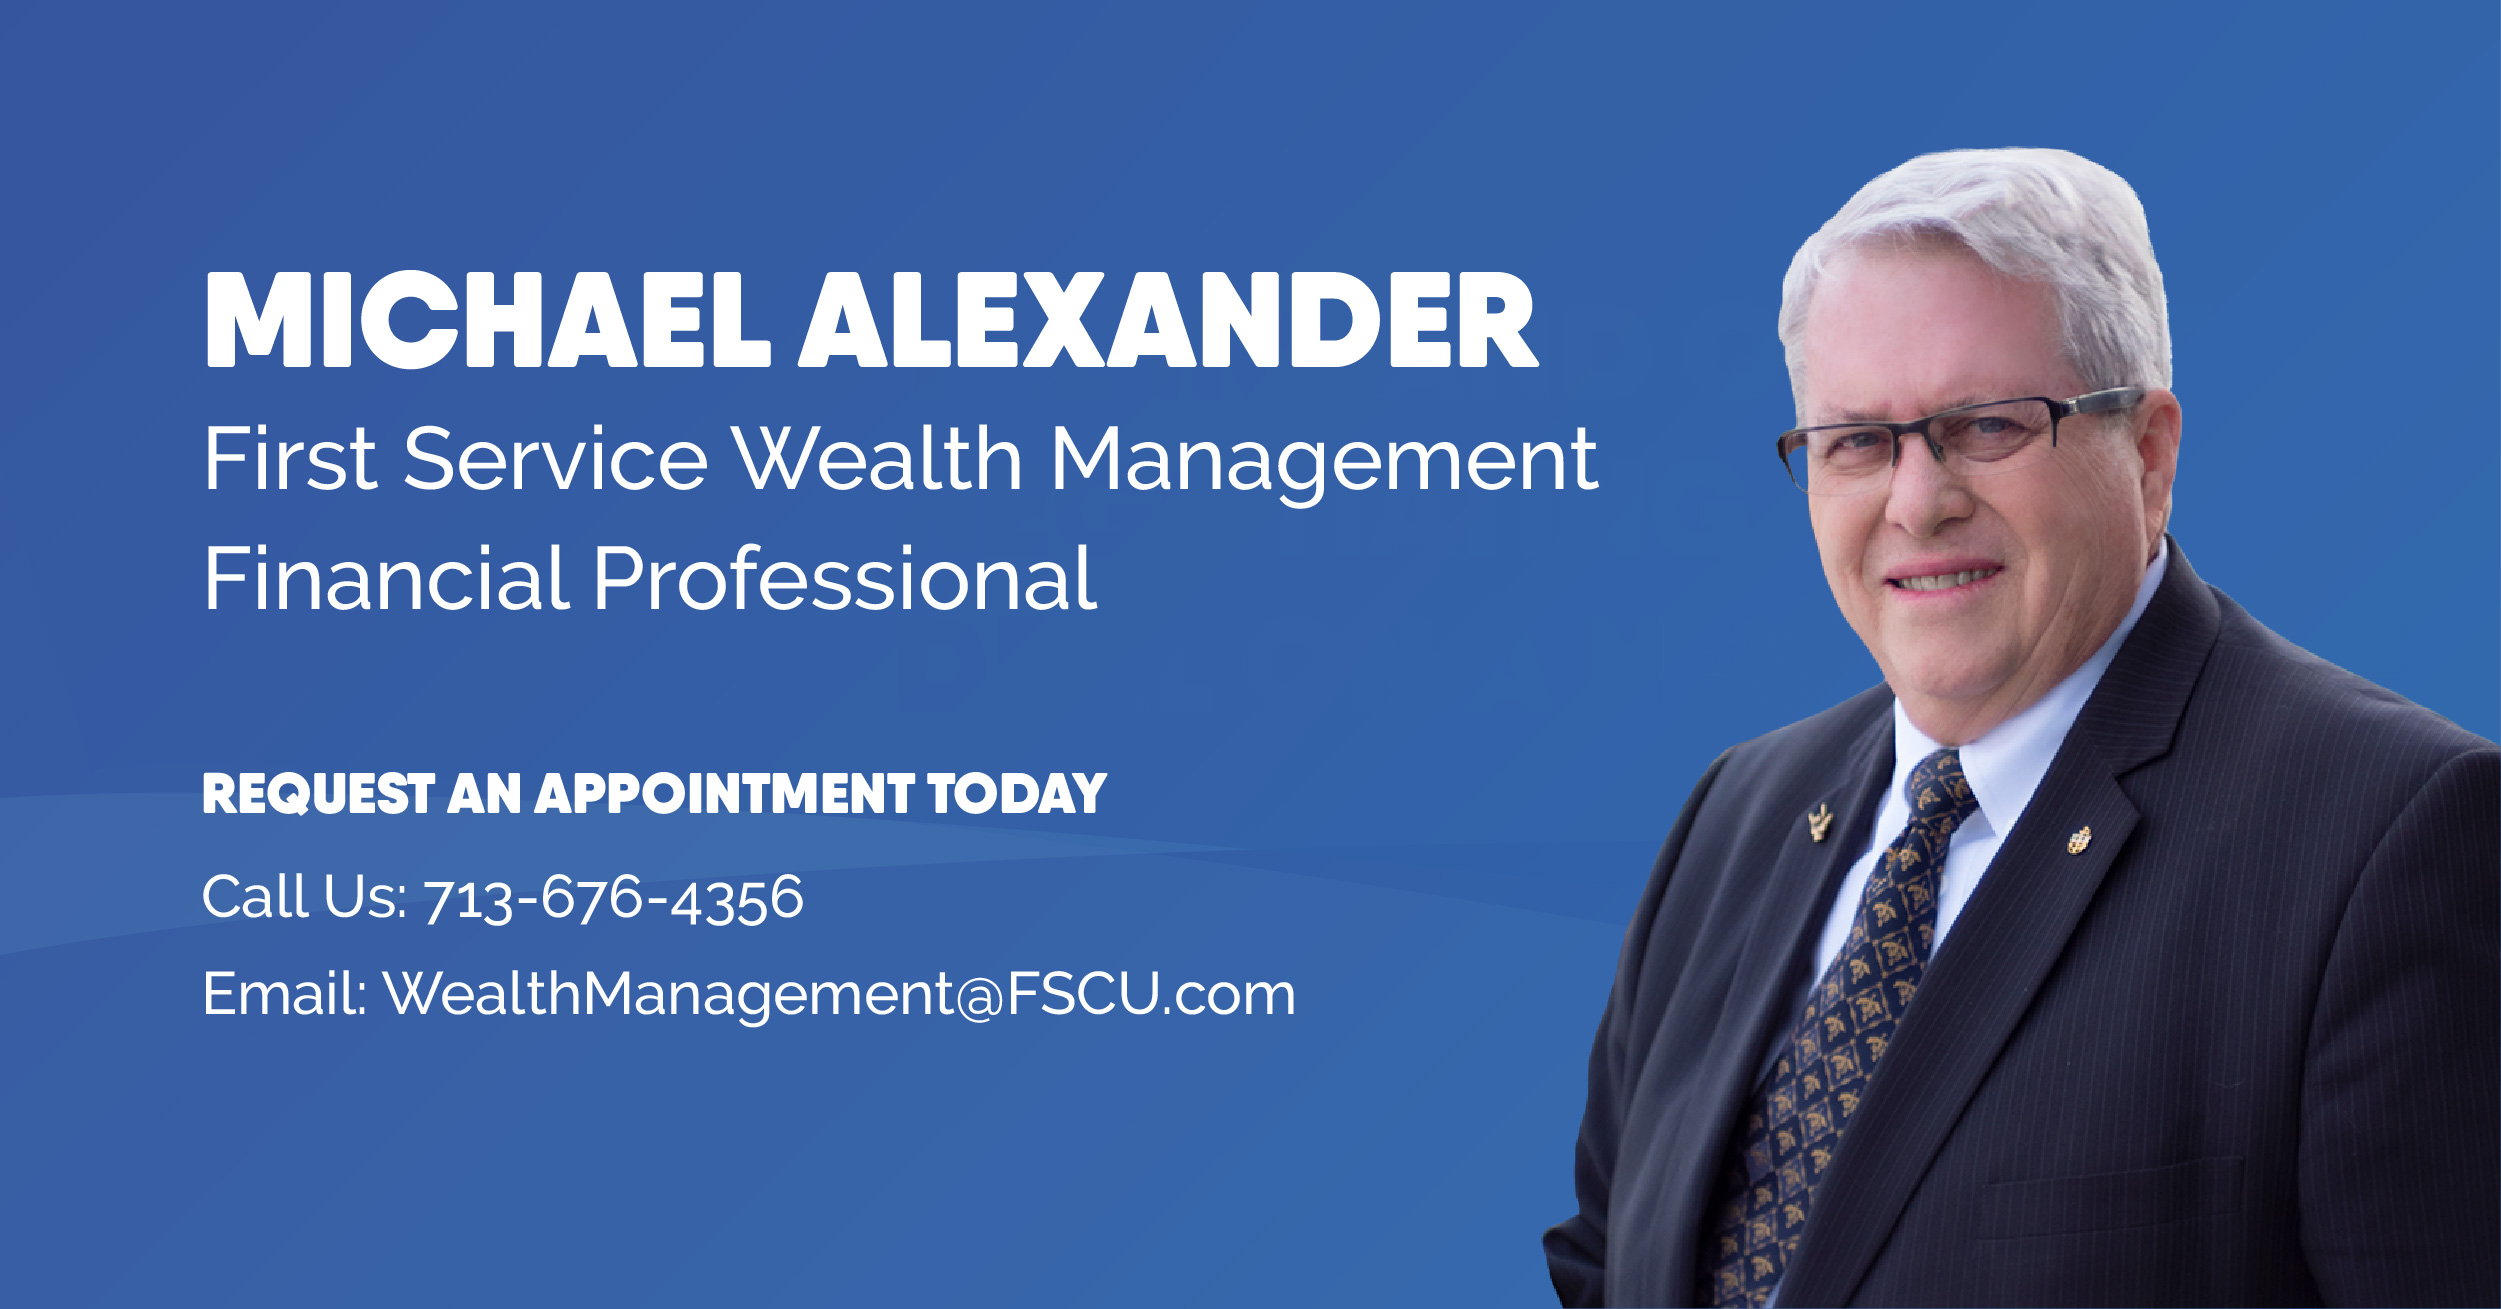 First Service Wealth Management Professional Michael Alexander